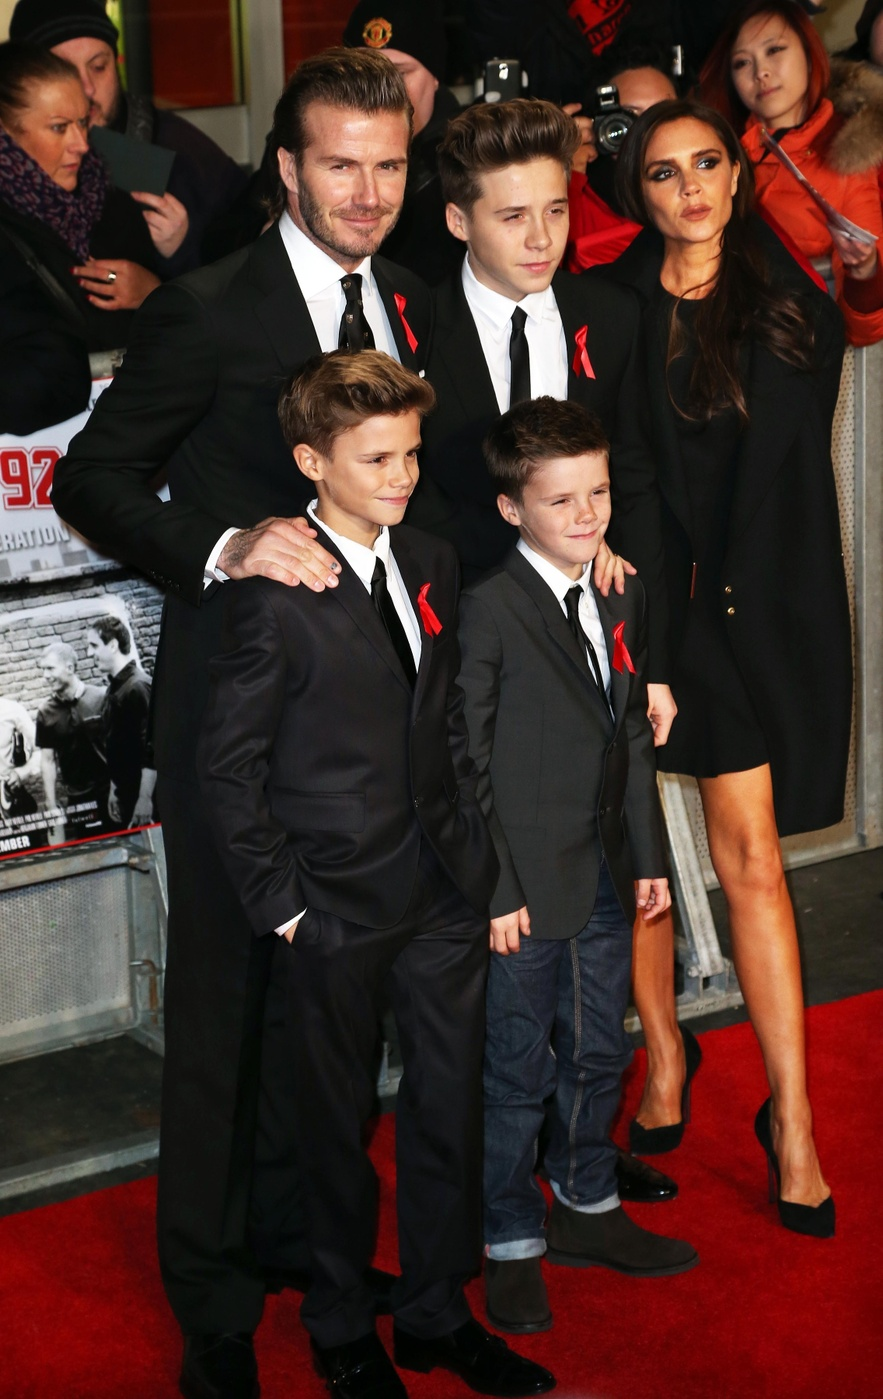 Victoria Beckham and David Beckham attend The World Premiere of 'The Class of 92' at The Odeon West End in London